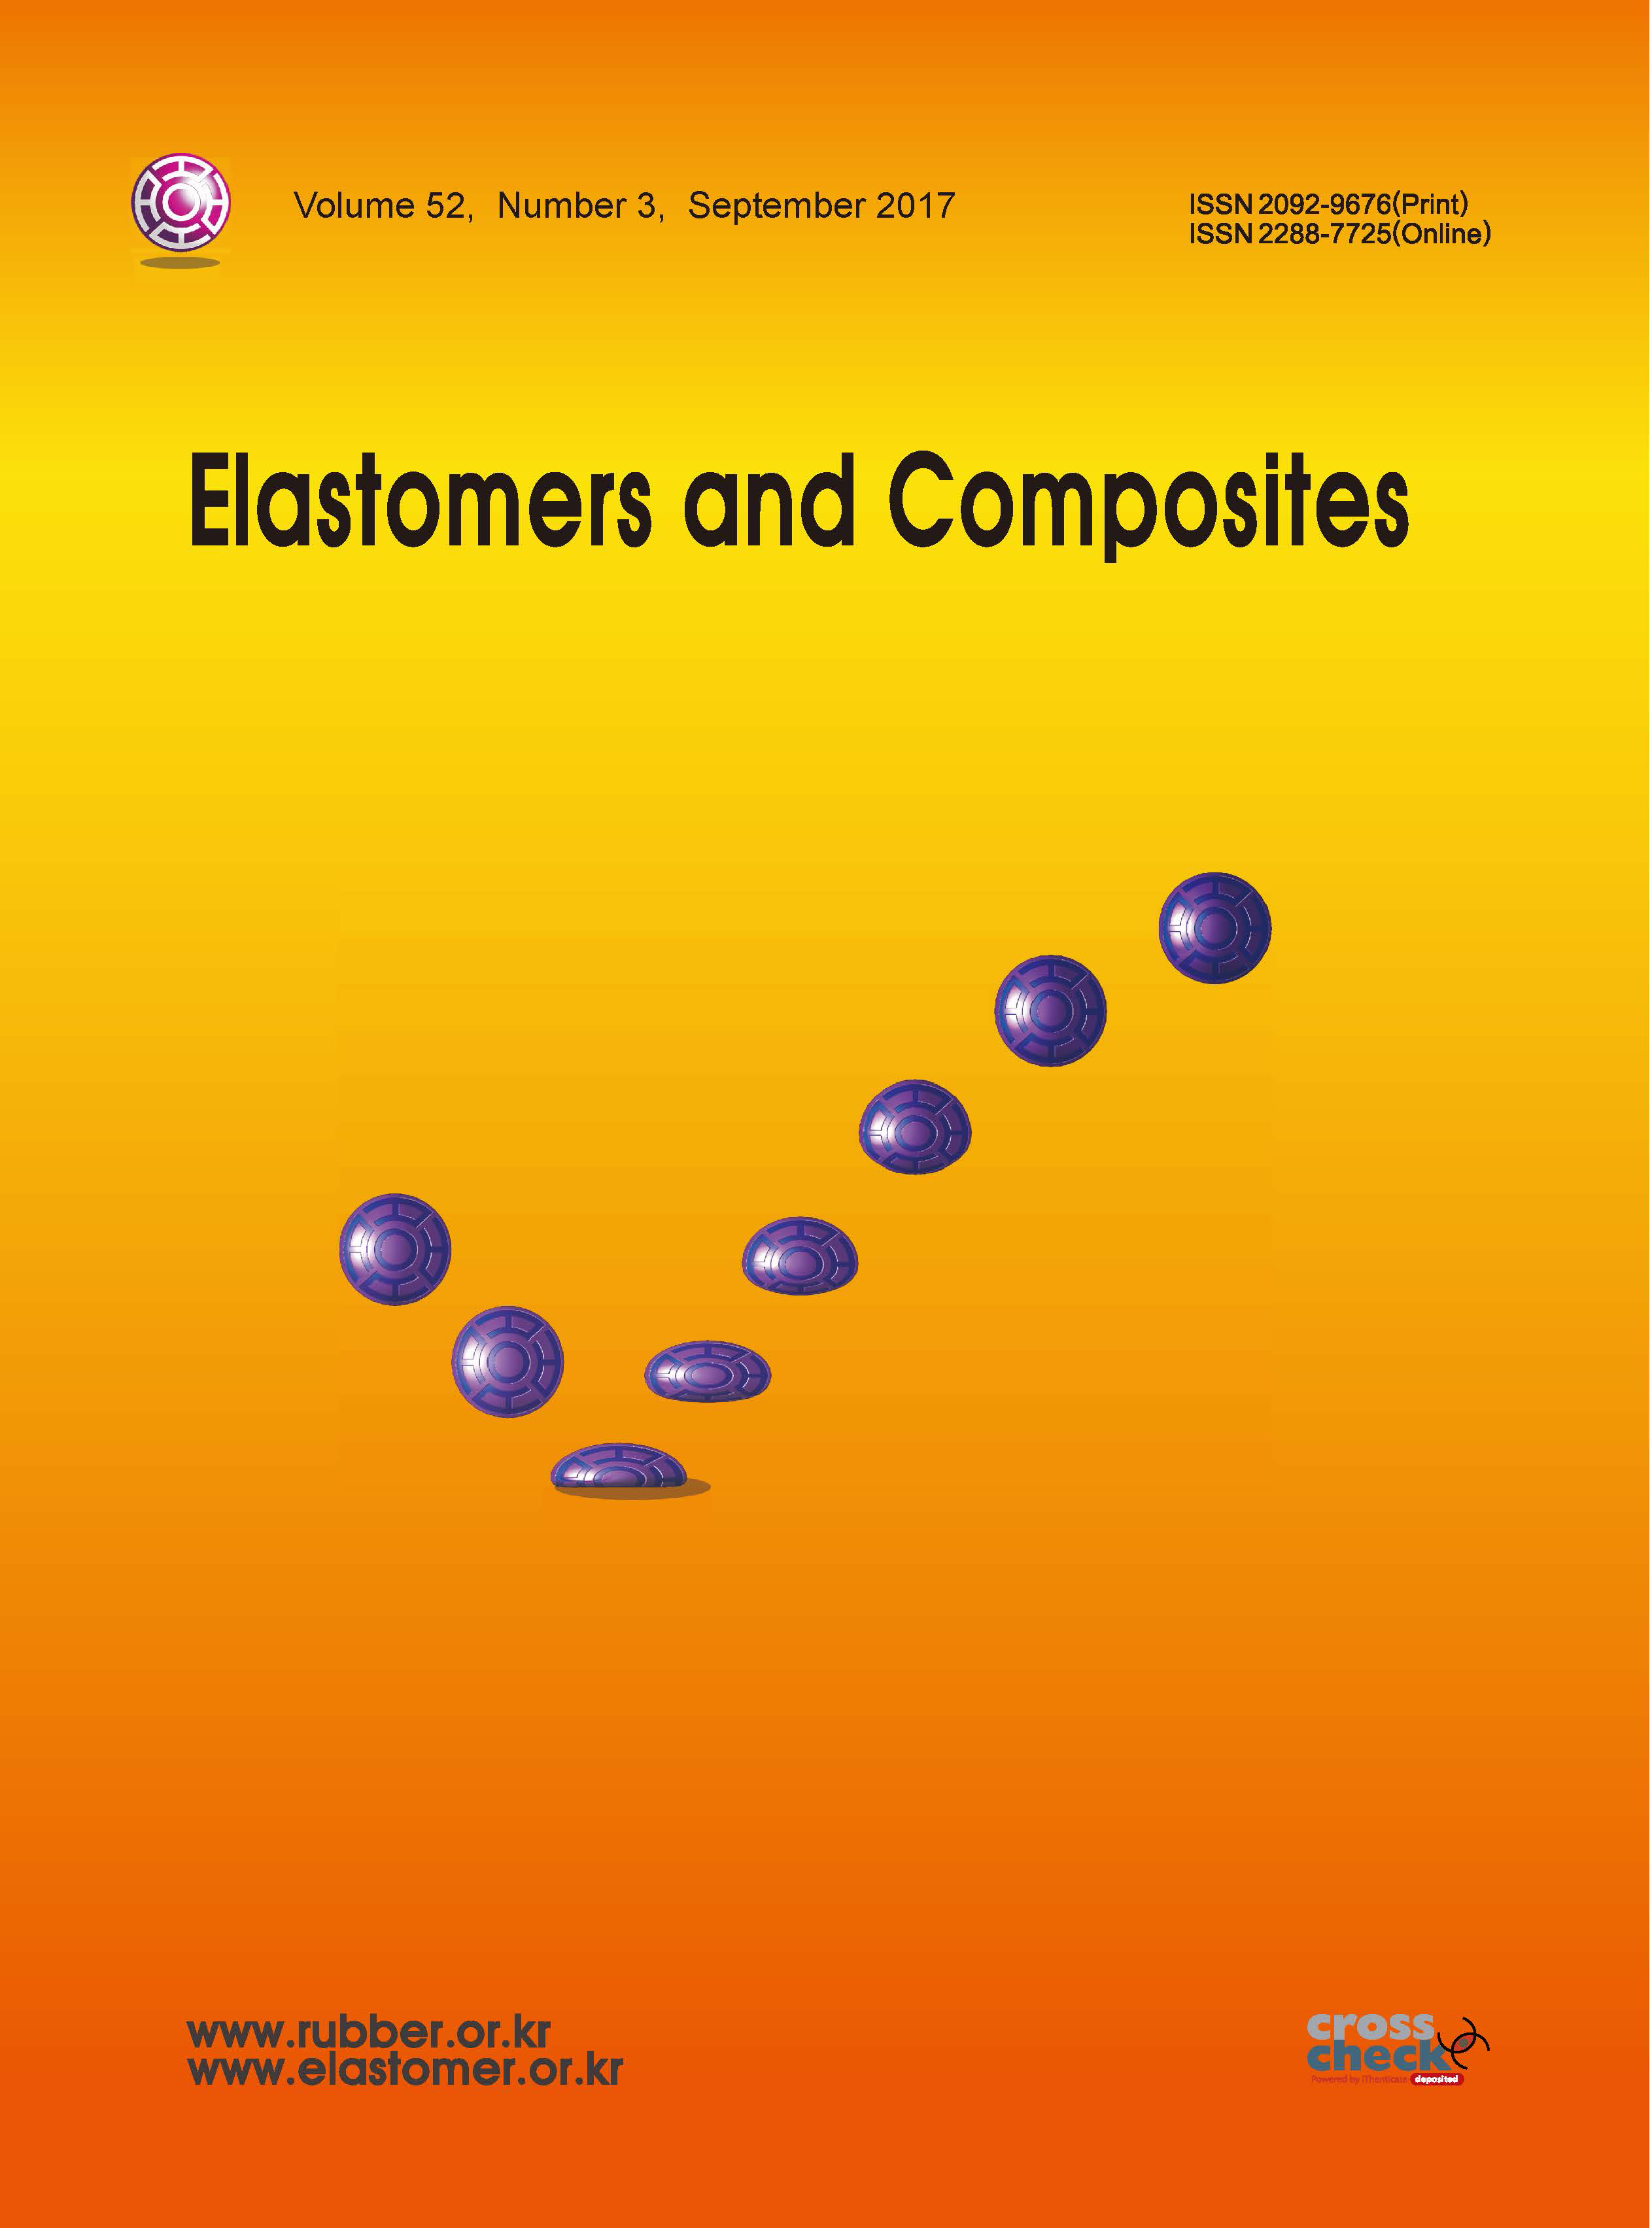 Elastomers and composites